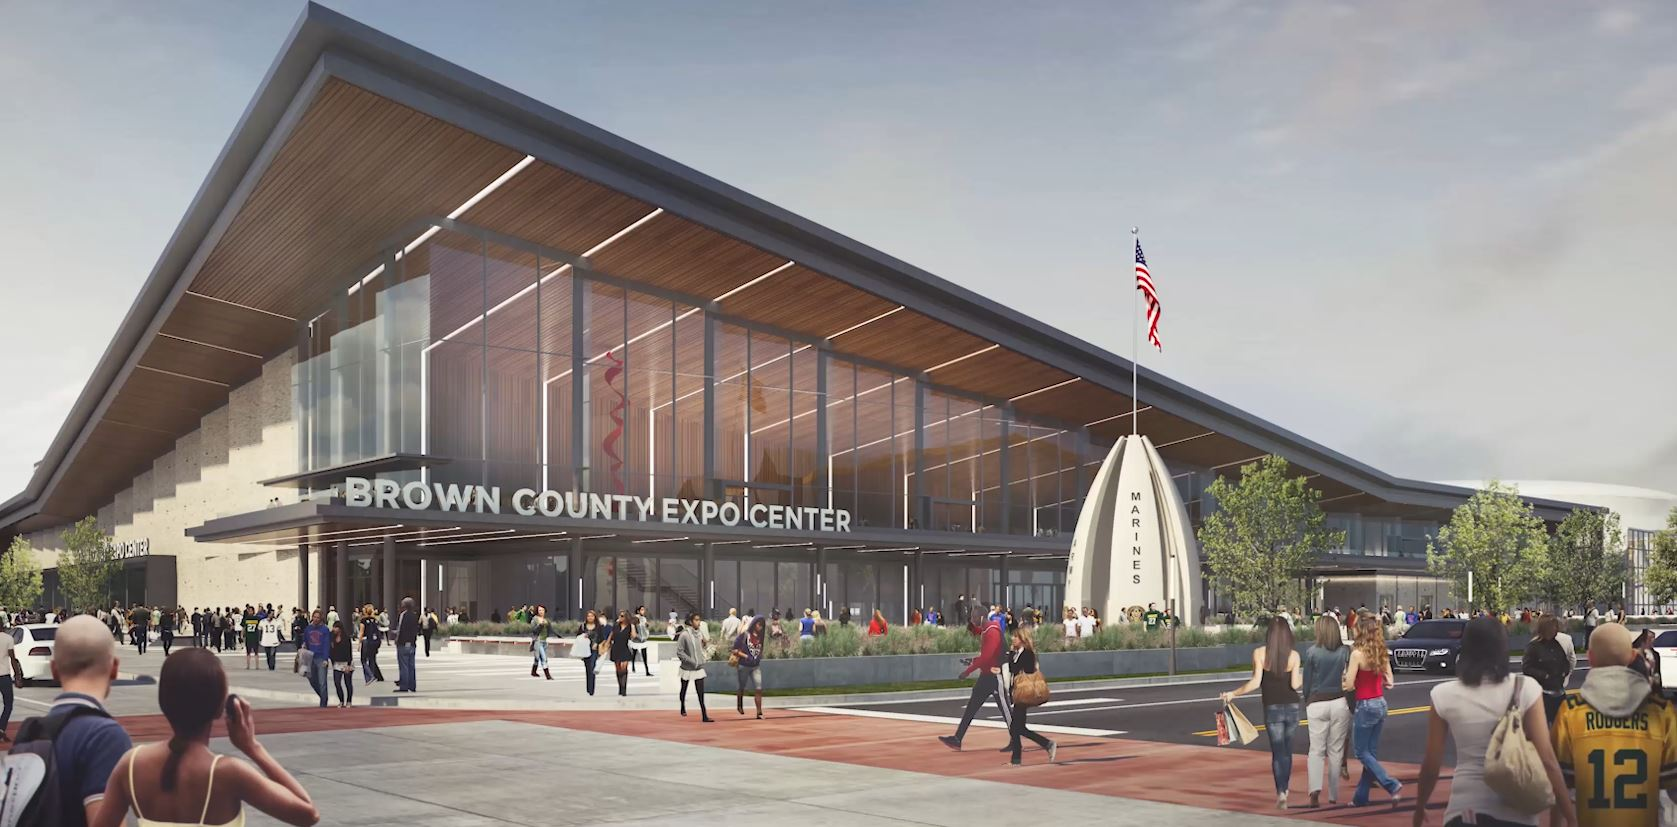 Brown County Expo Center - Veterans' Memorial